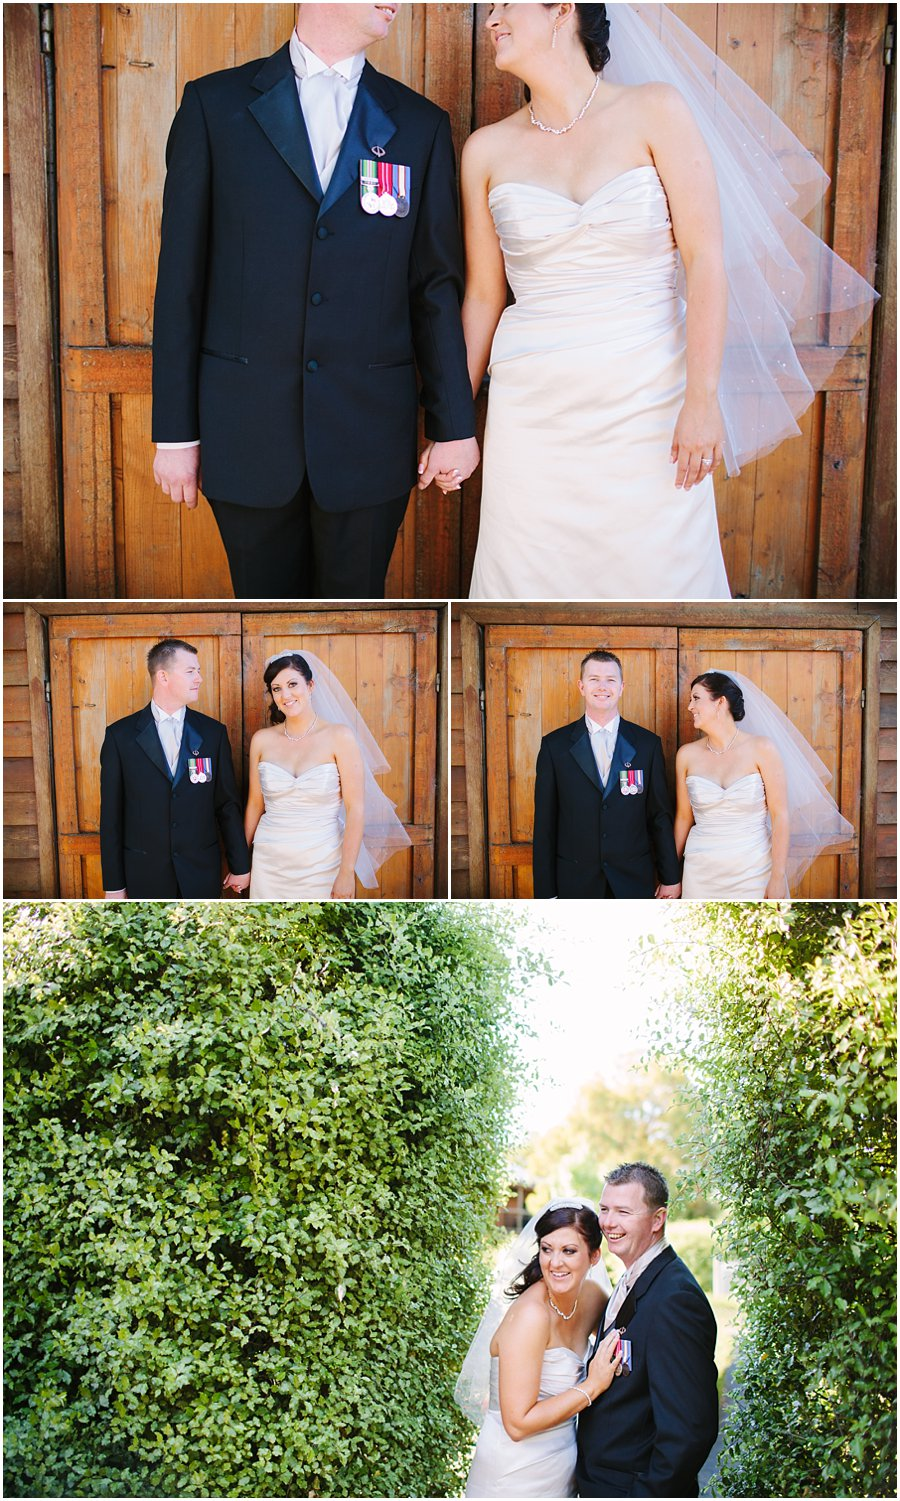 Christian_Chanelle_Harvey_Lancefield_Wedding_10